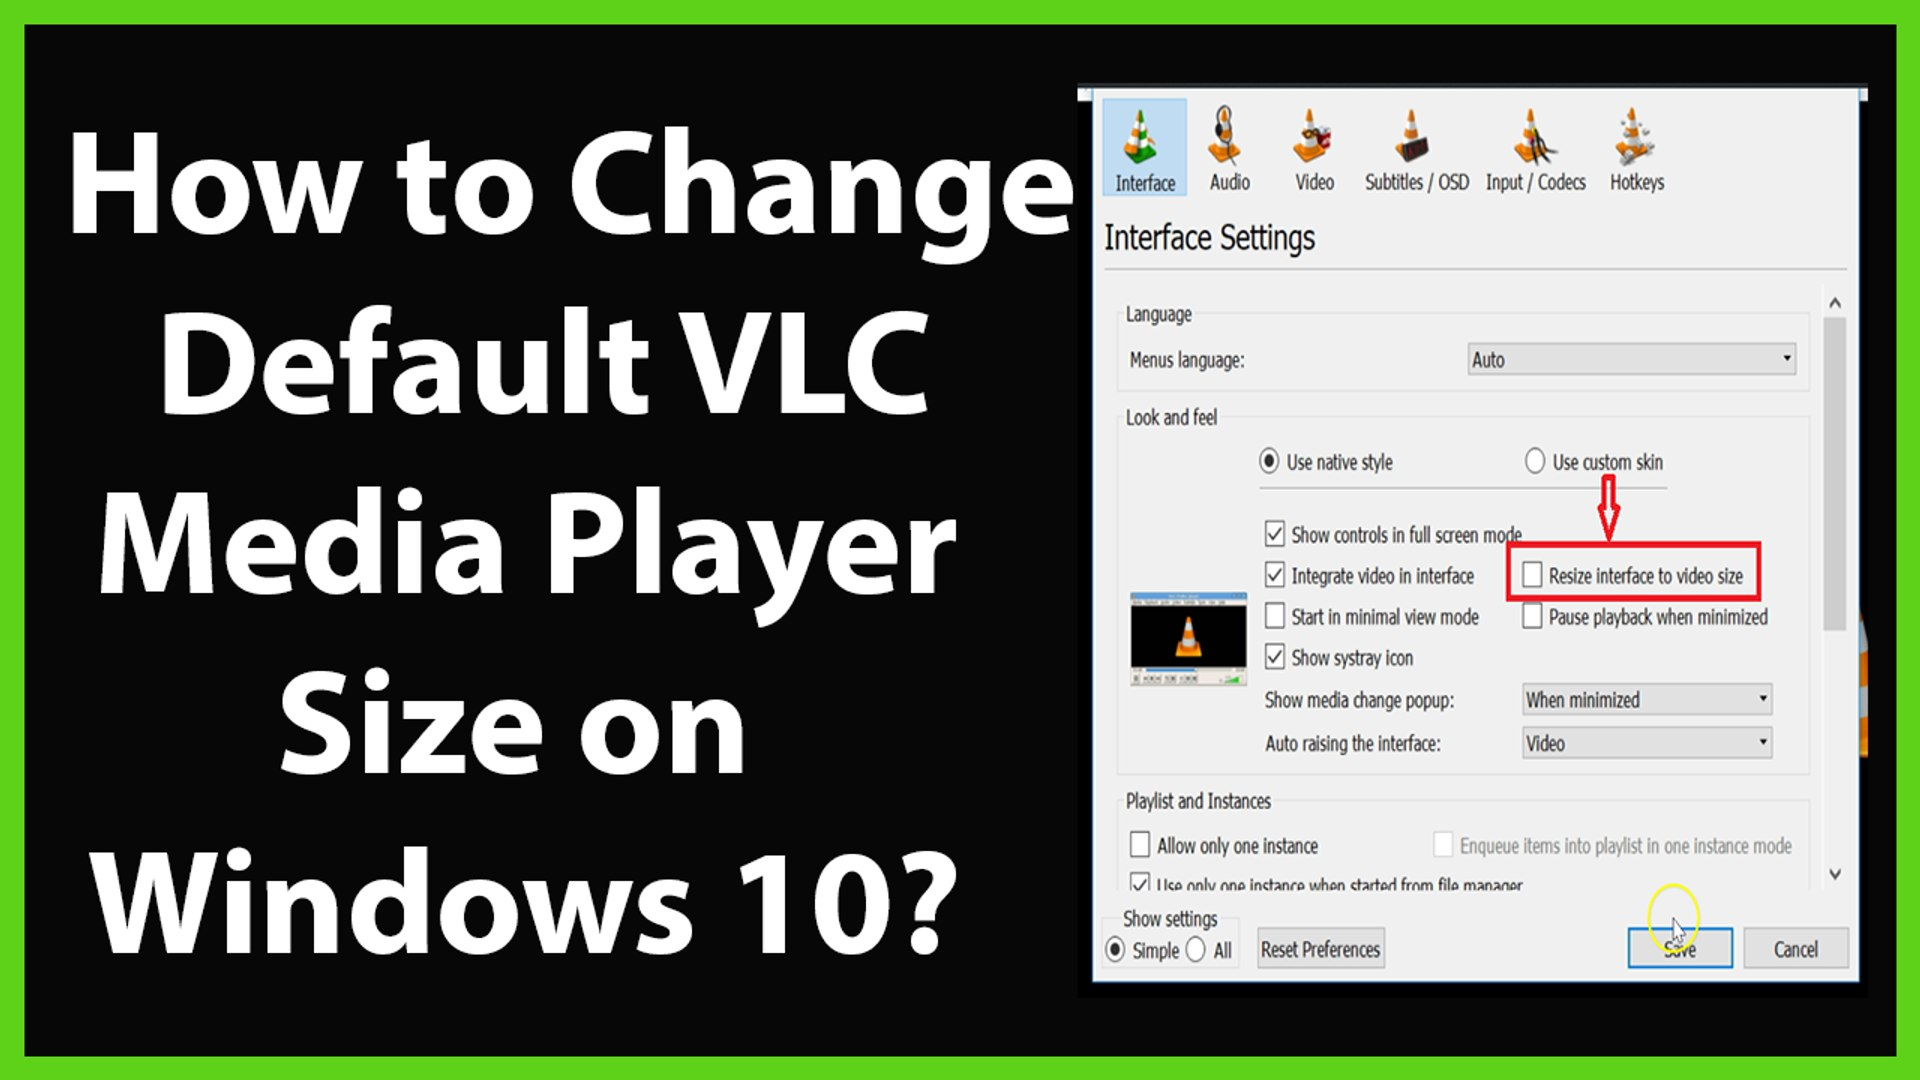 How to Change or Set Default VLC Media Player Size on Windows 10?